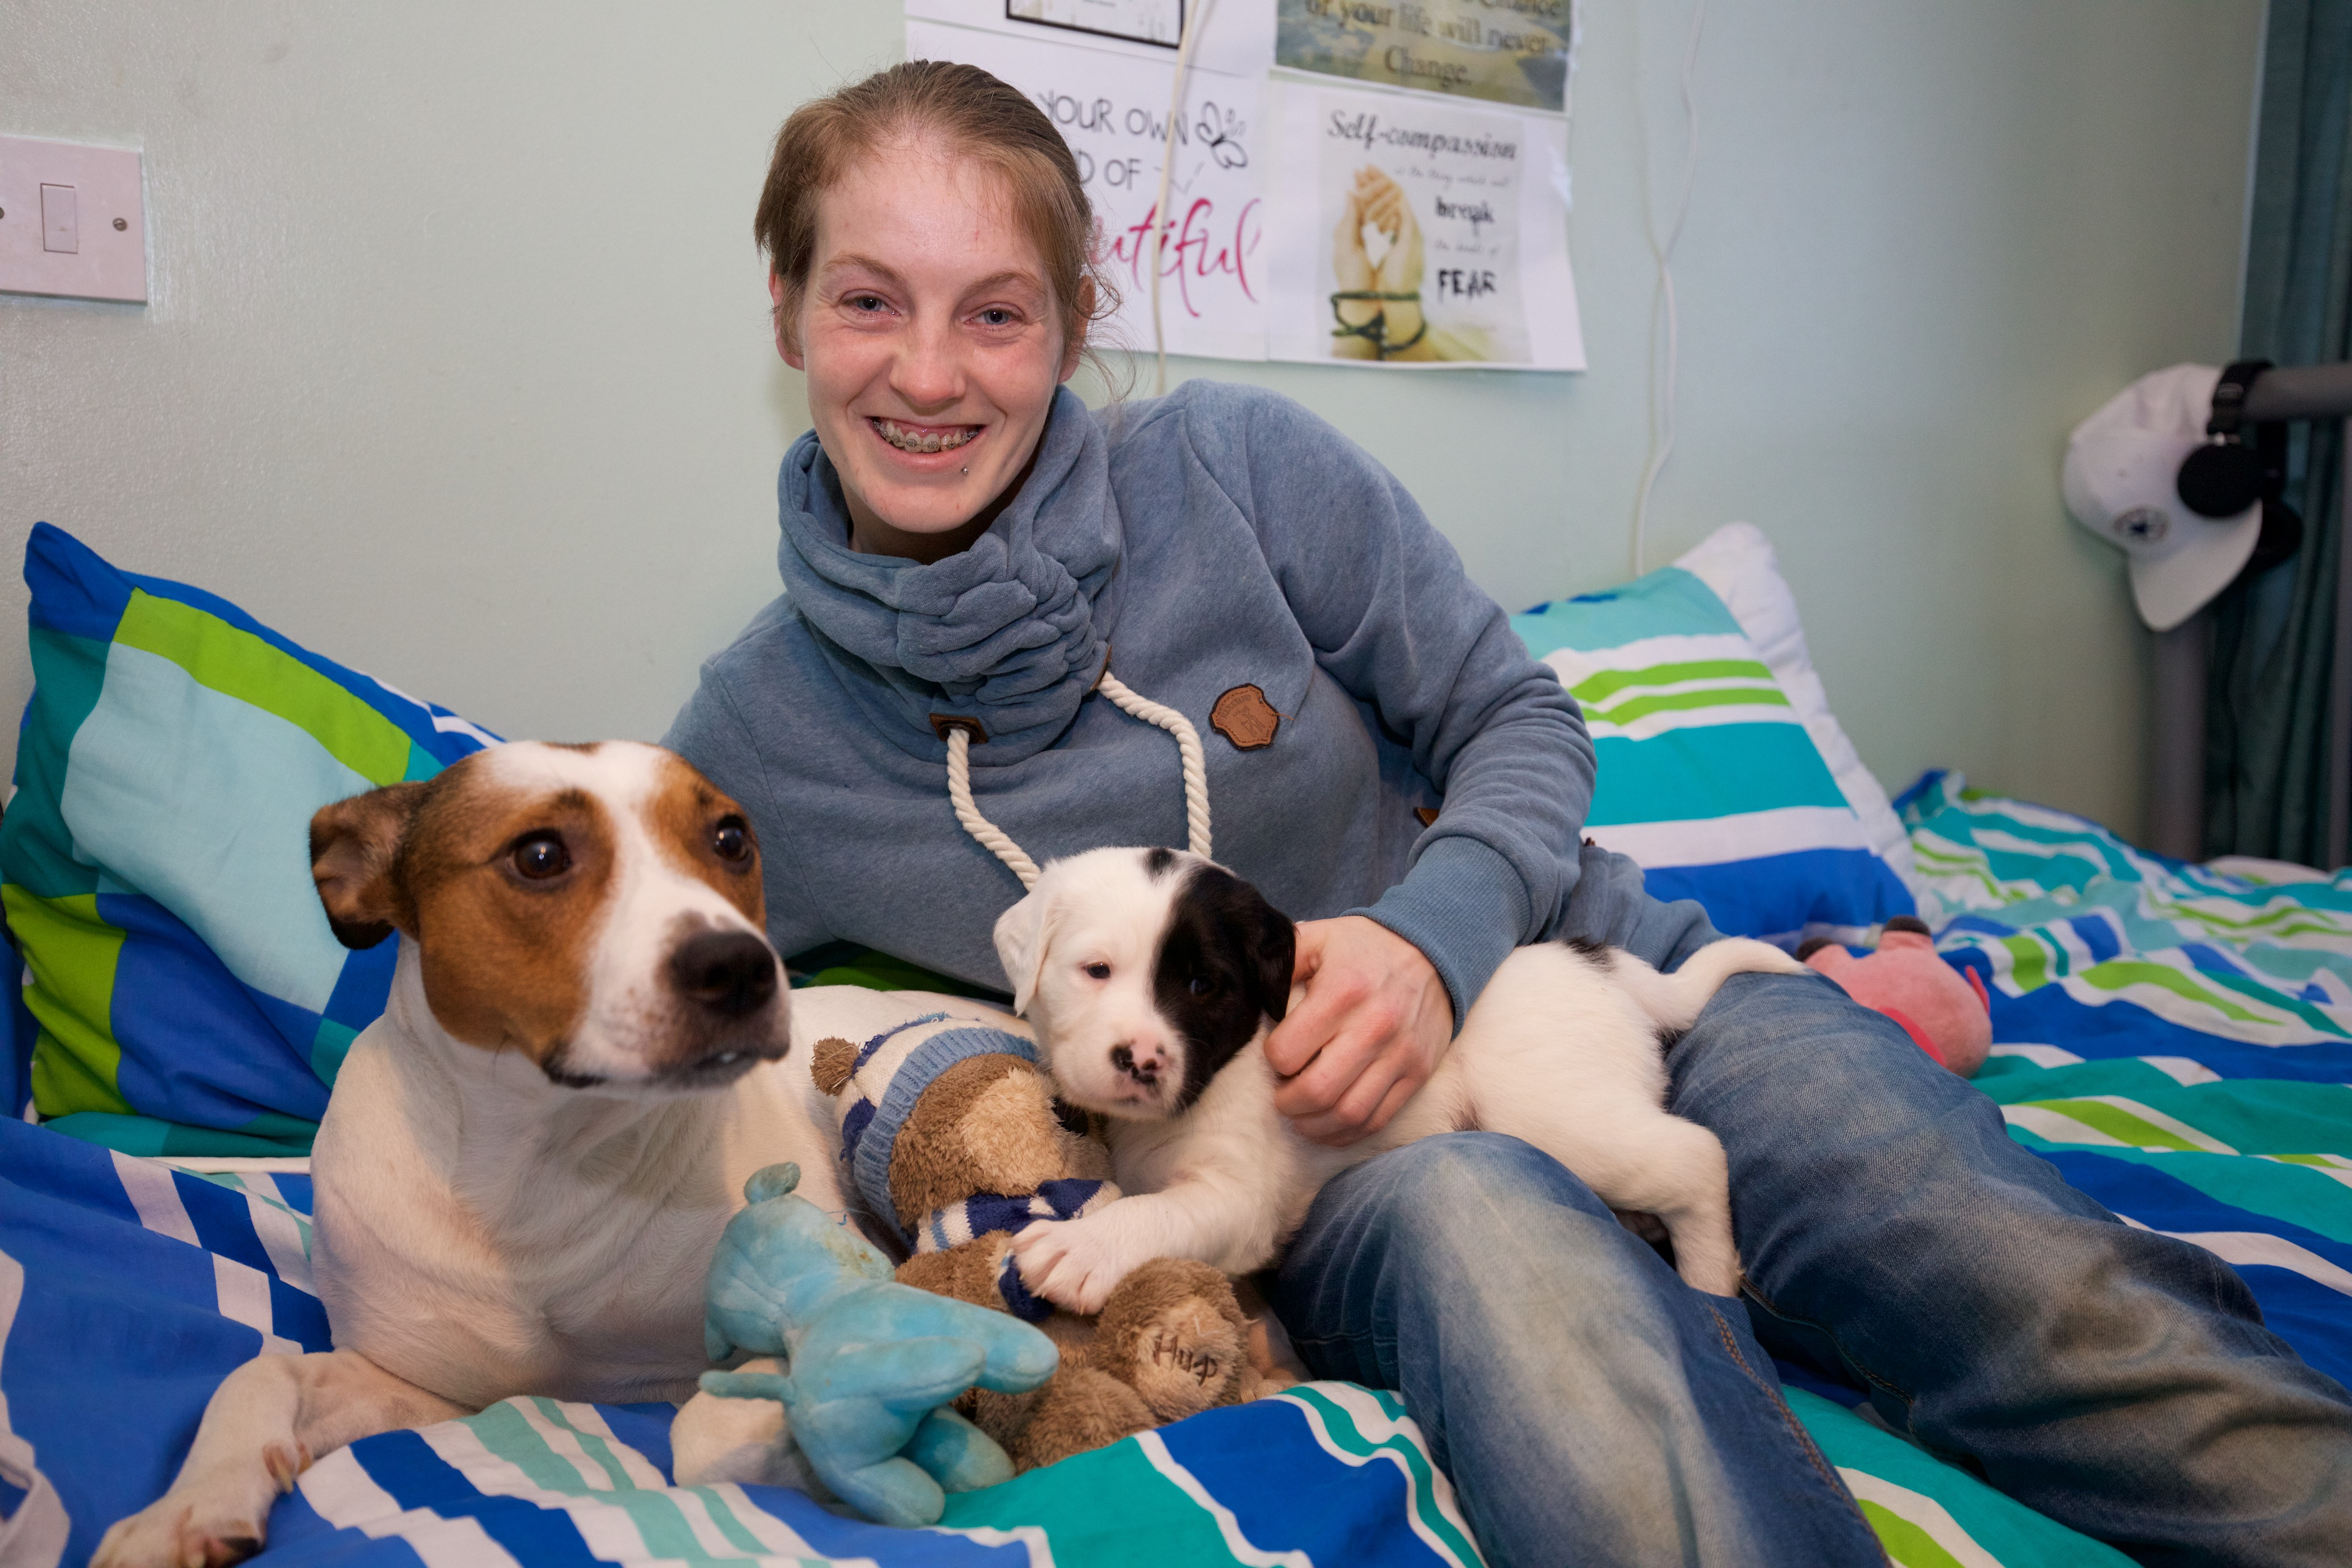 Natasha Robins with Harper the dog and one of her newborns